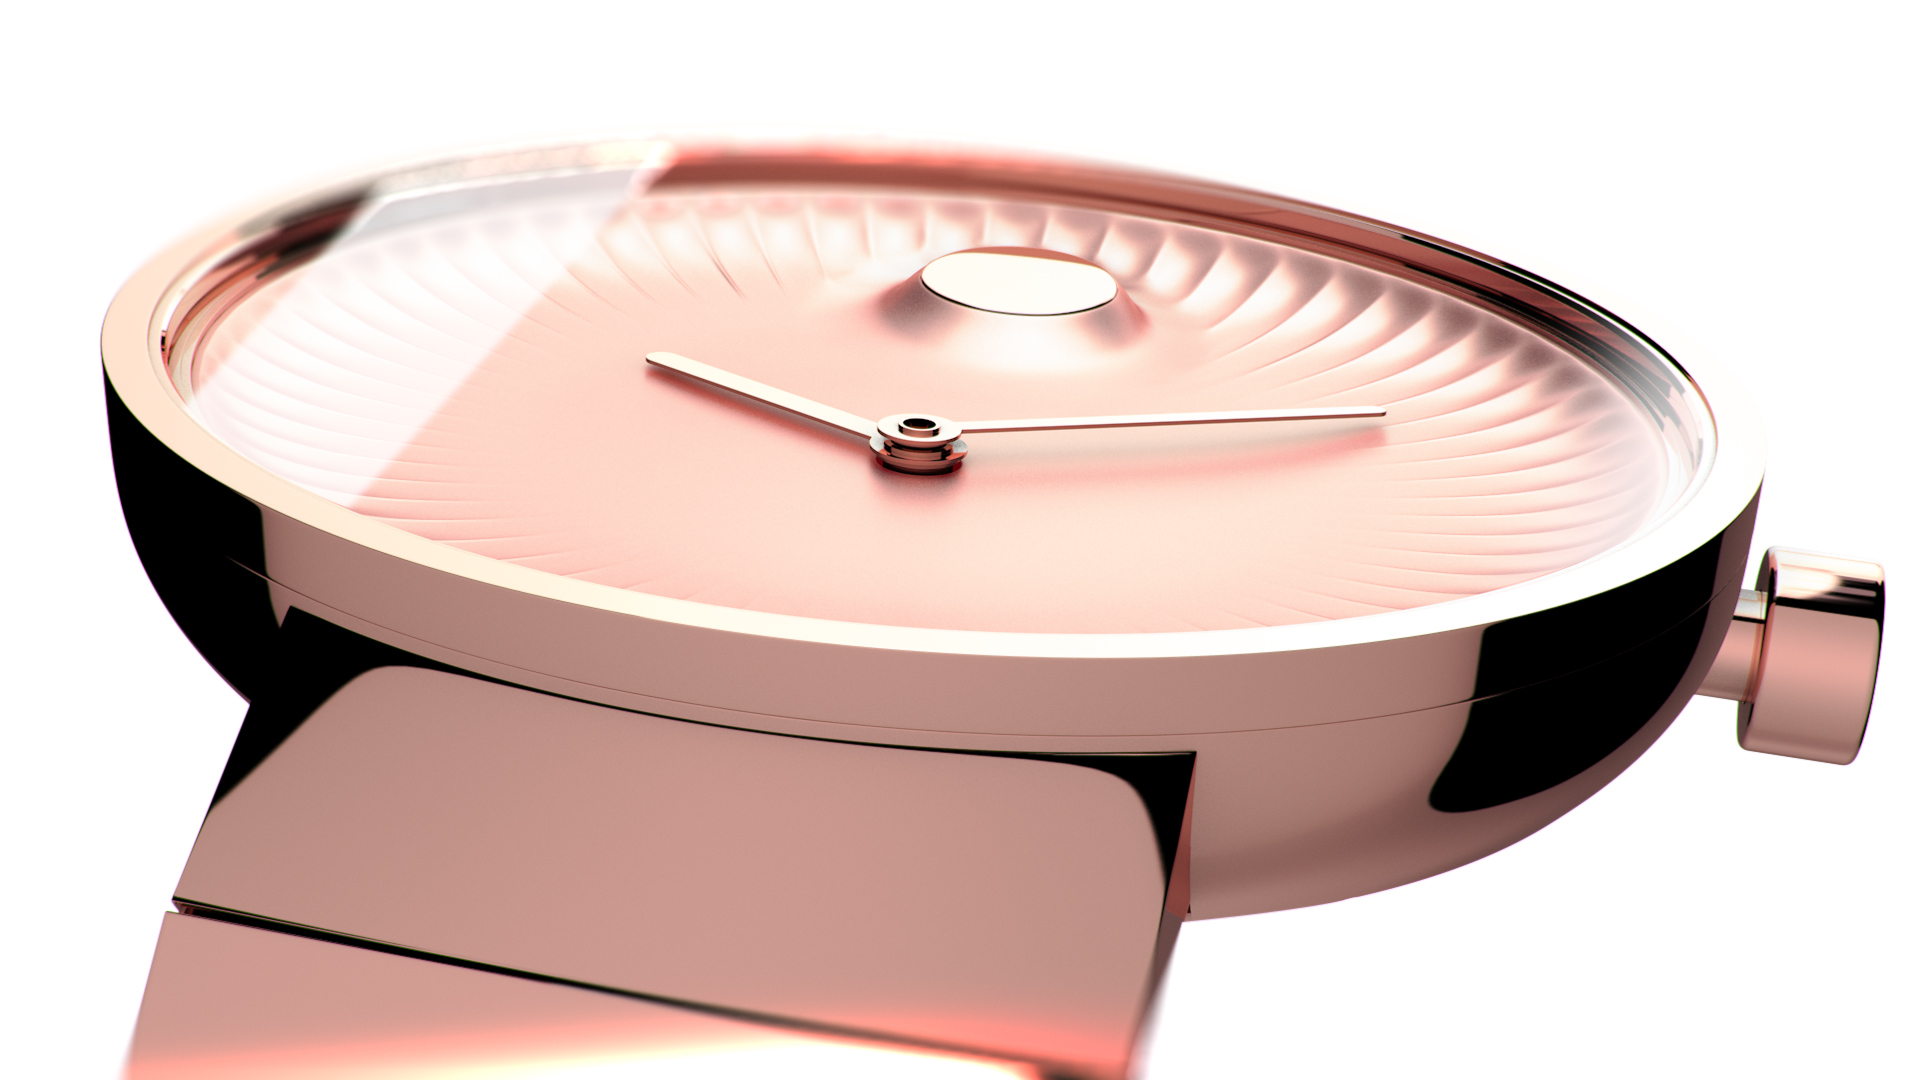 WomensWatch_Edge_RoseGold0002